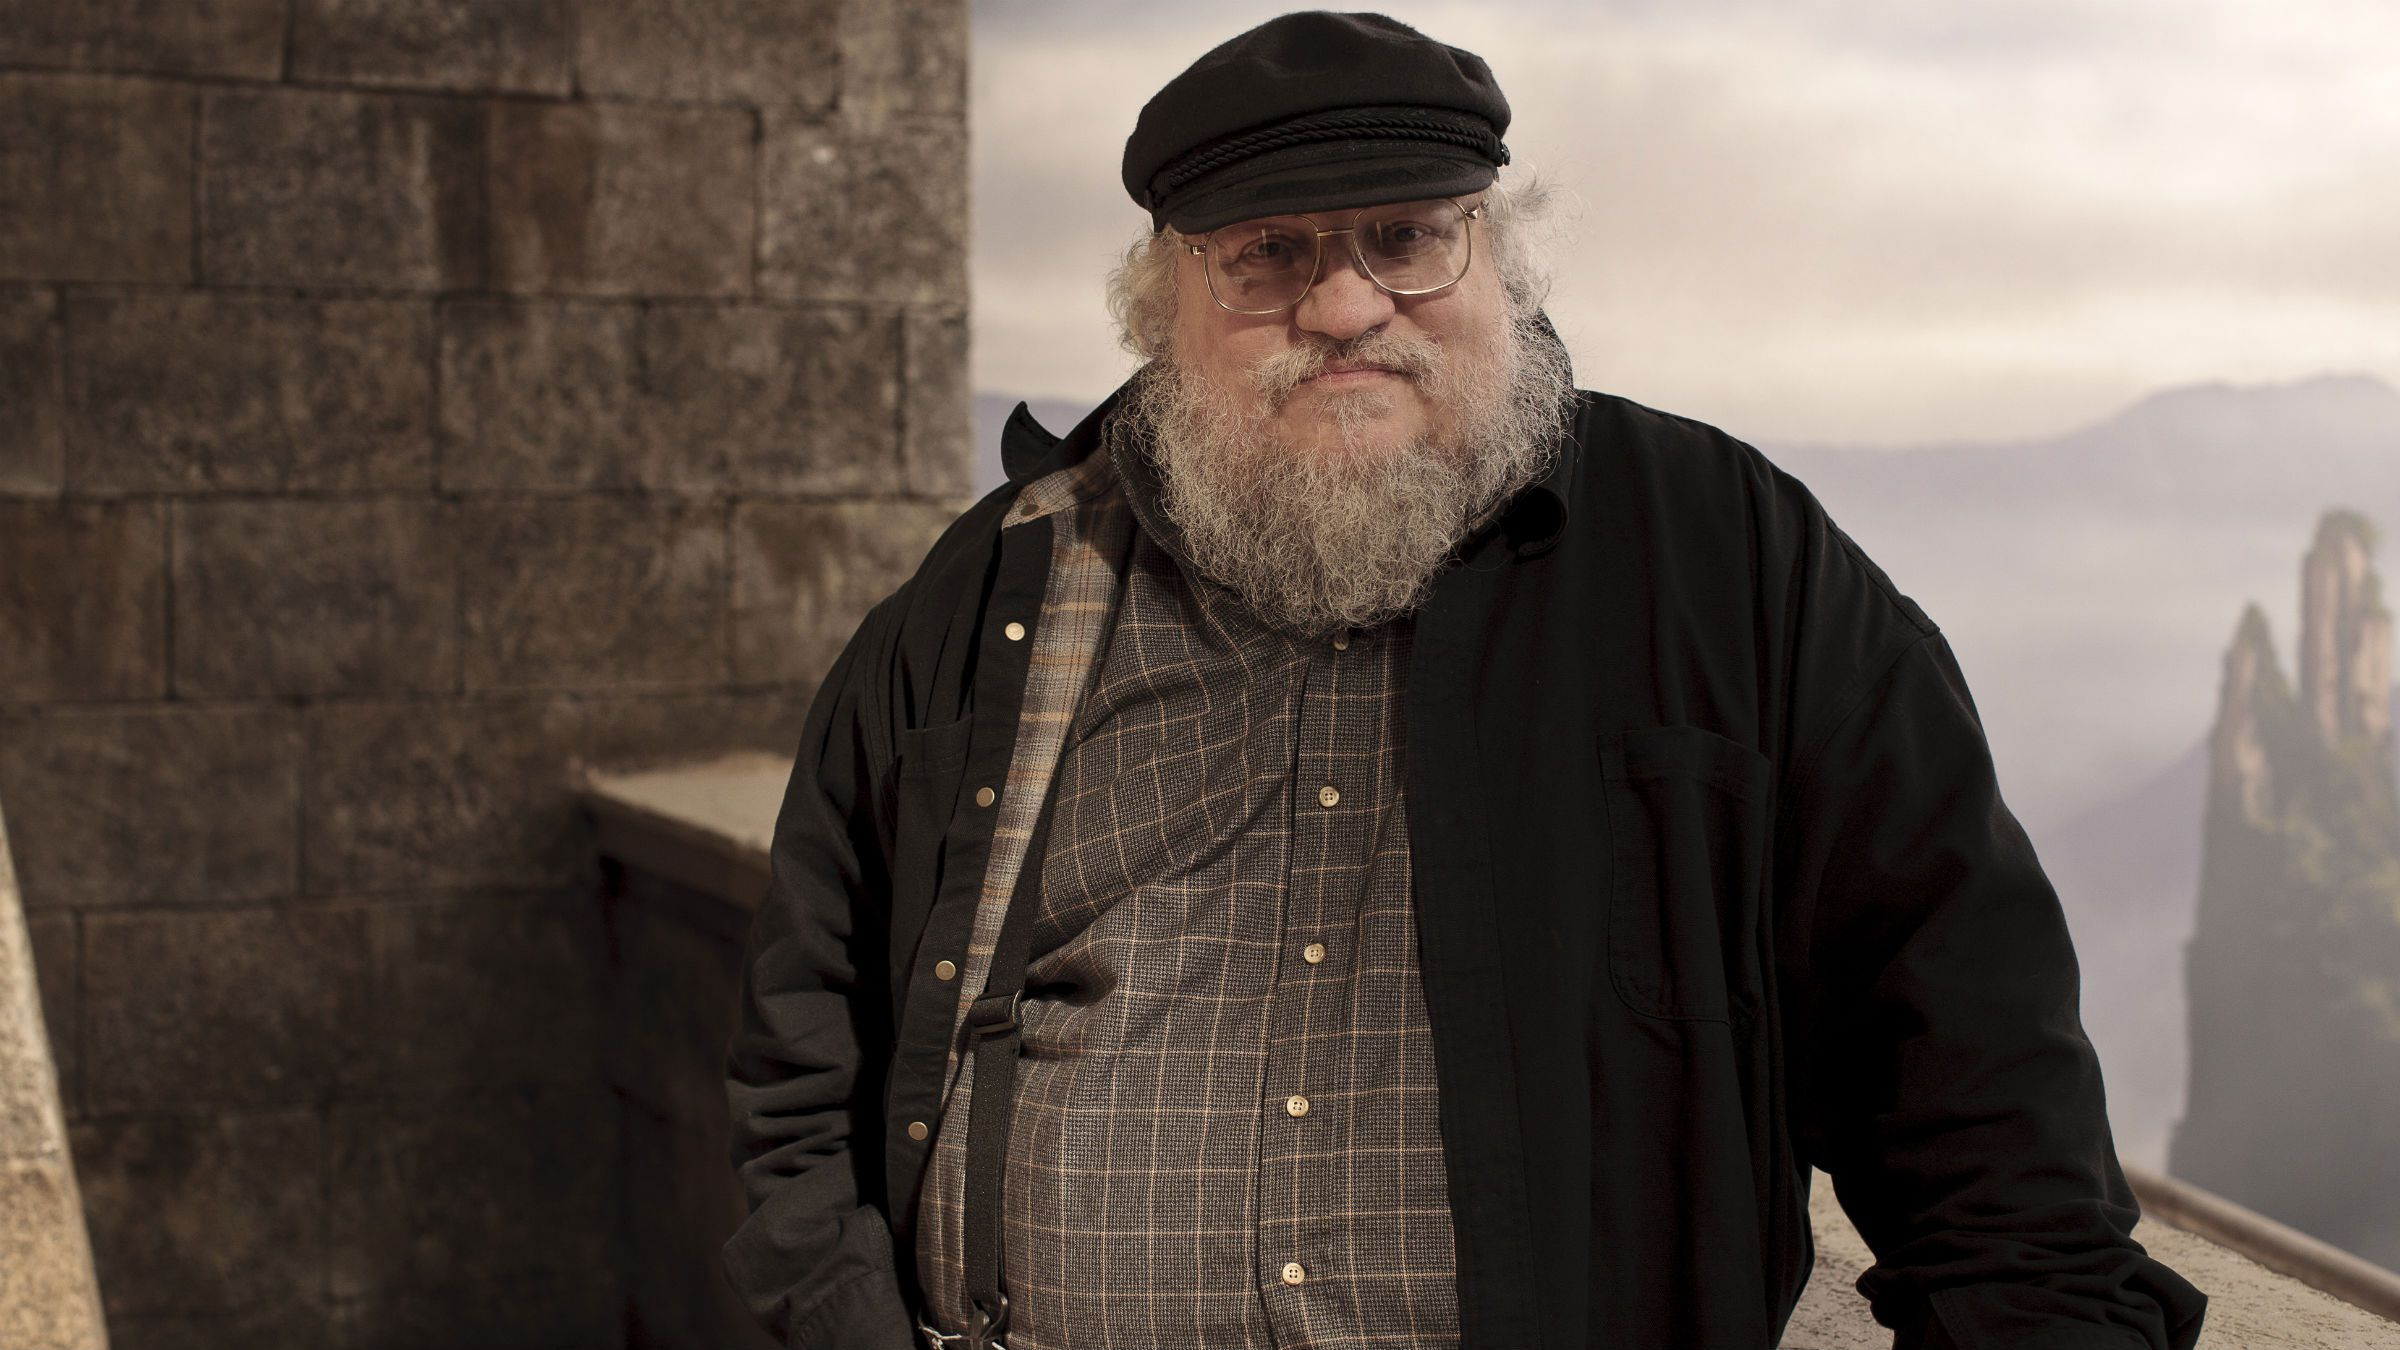 """In this publicity image released by HBO, author George R.R. Martin whose novel series have been adapted into the HBO series """"Game of Thrones,"""" is shown on the set. (AP Photo/HBO, Nick Briggs )"""